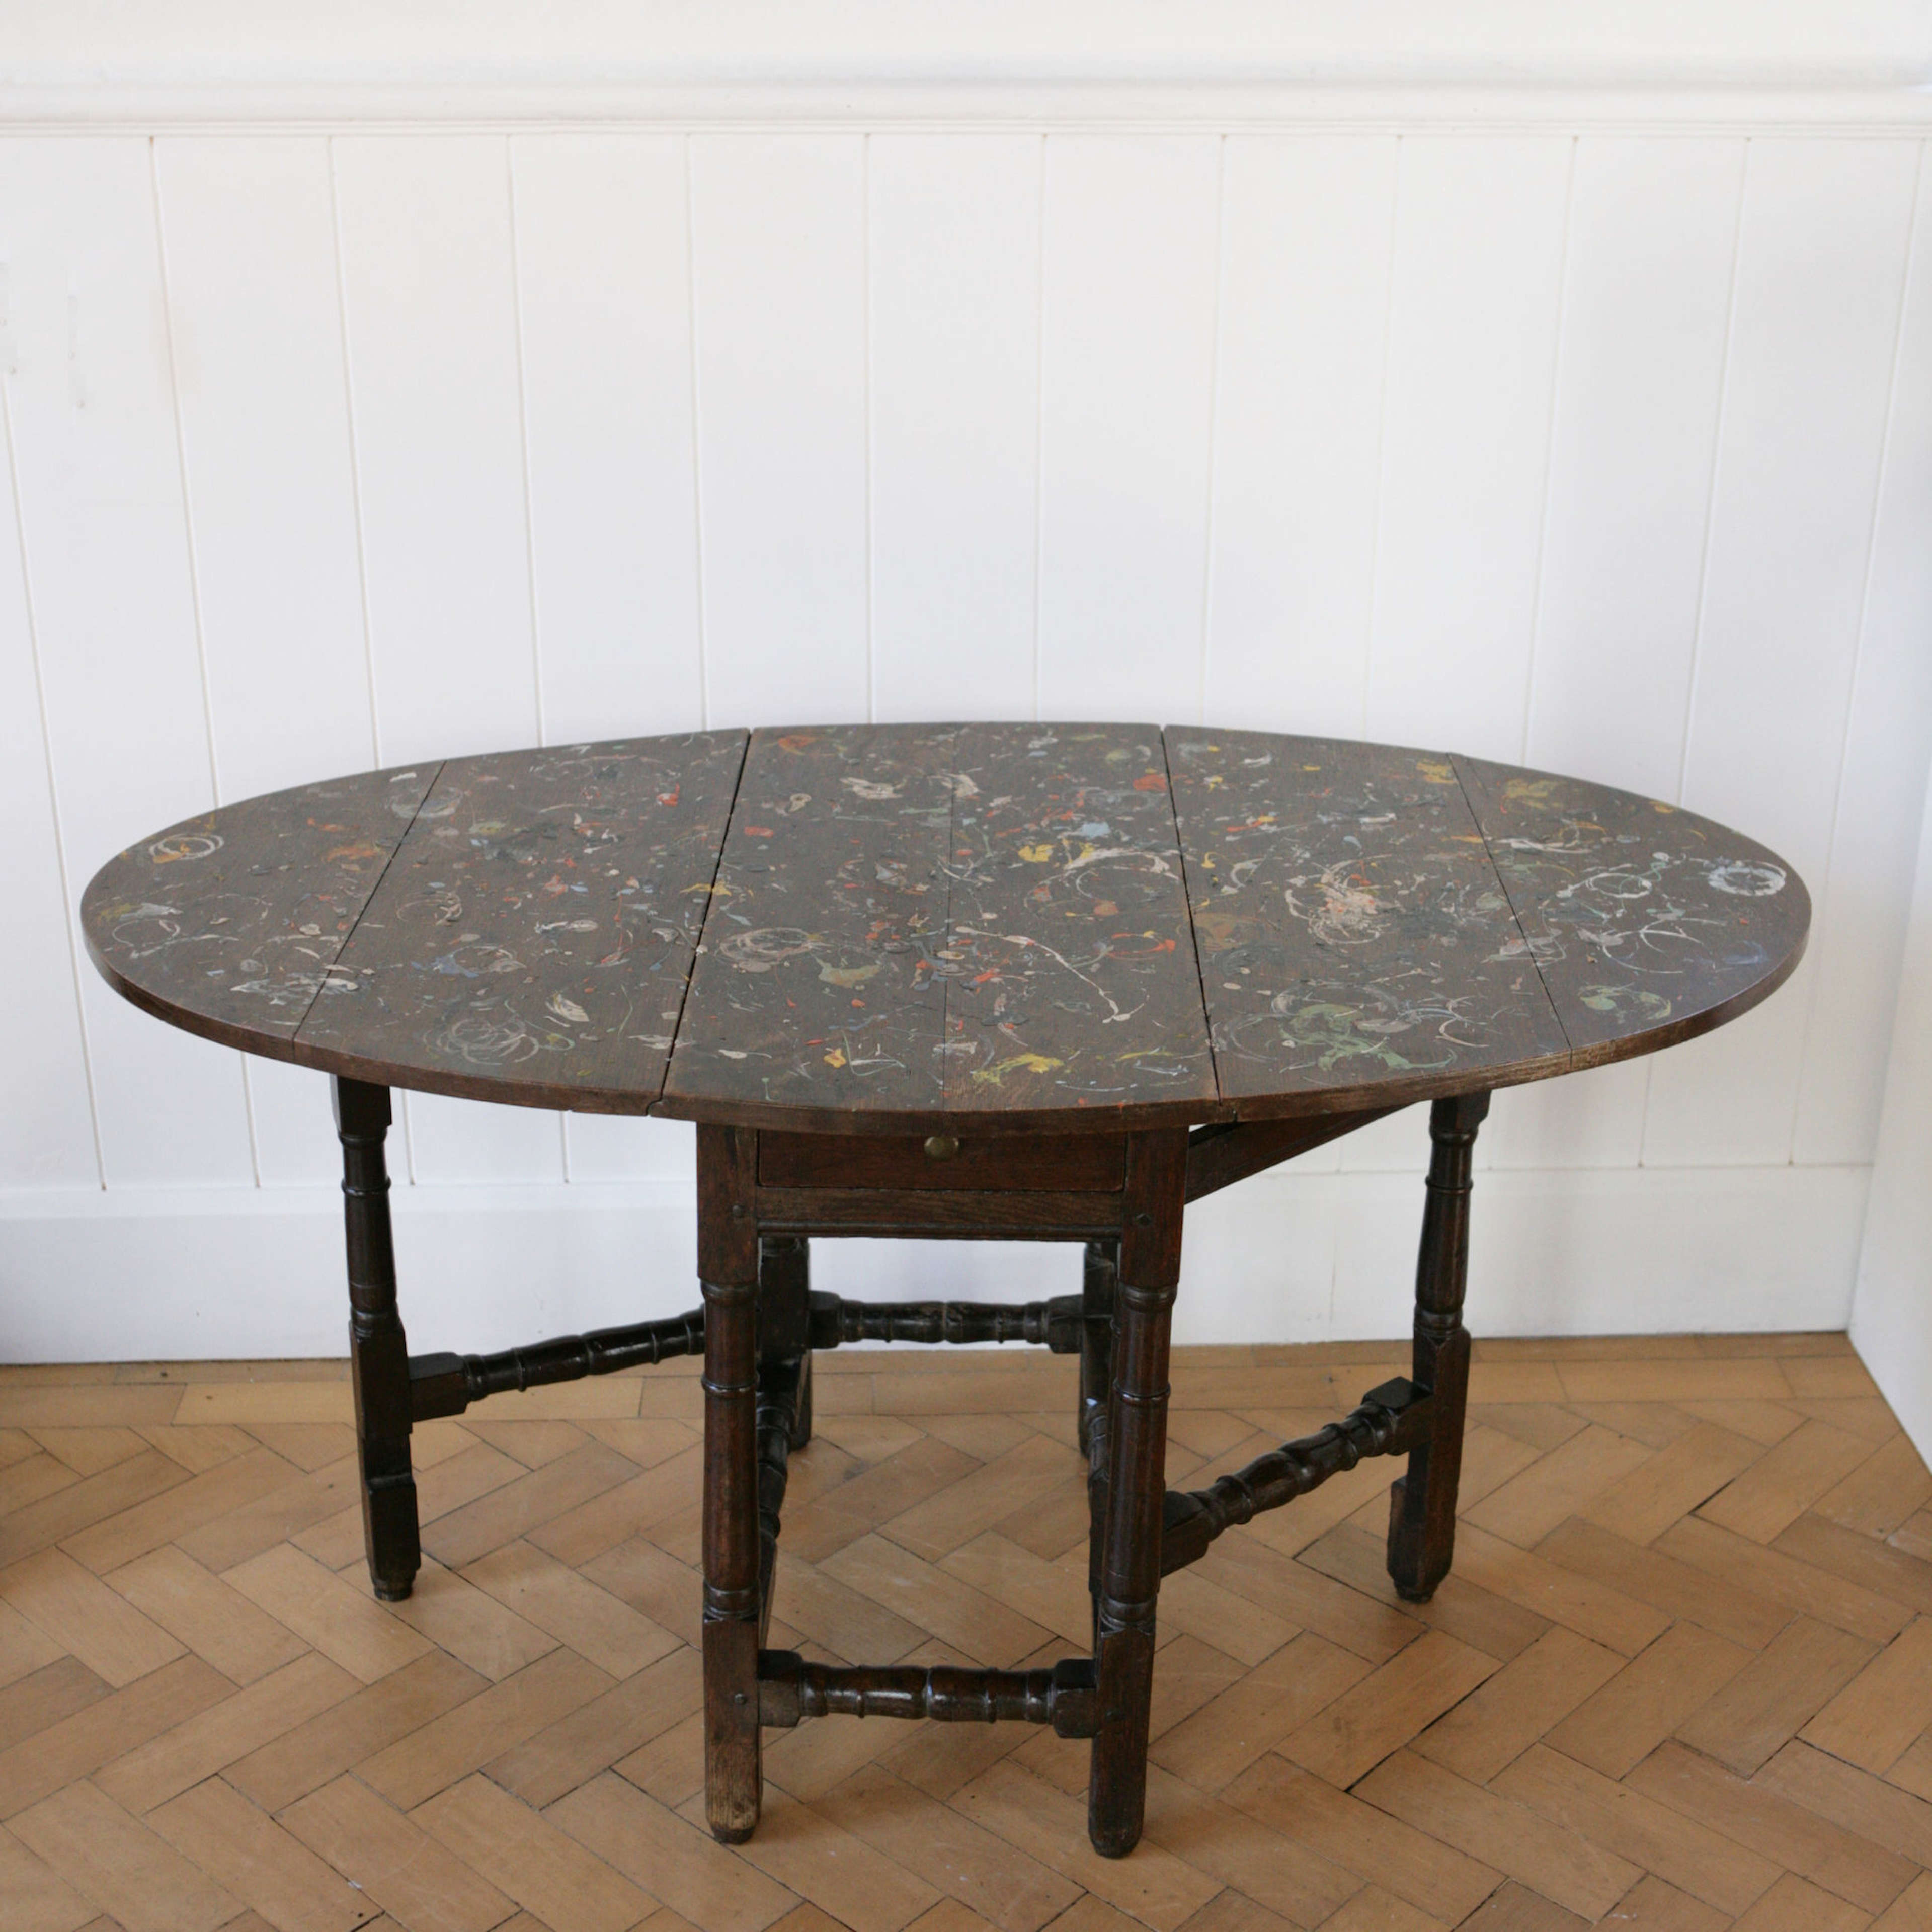 Unique C18th gateleg table with paint splatters and super patina.